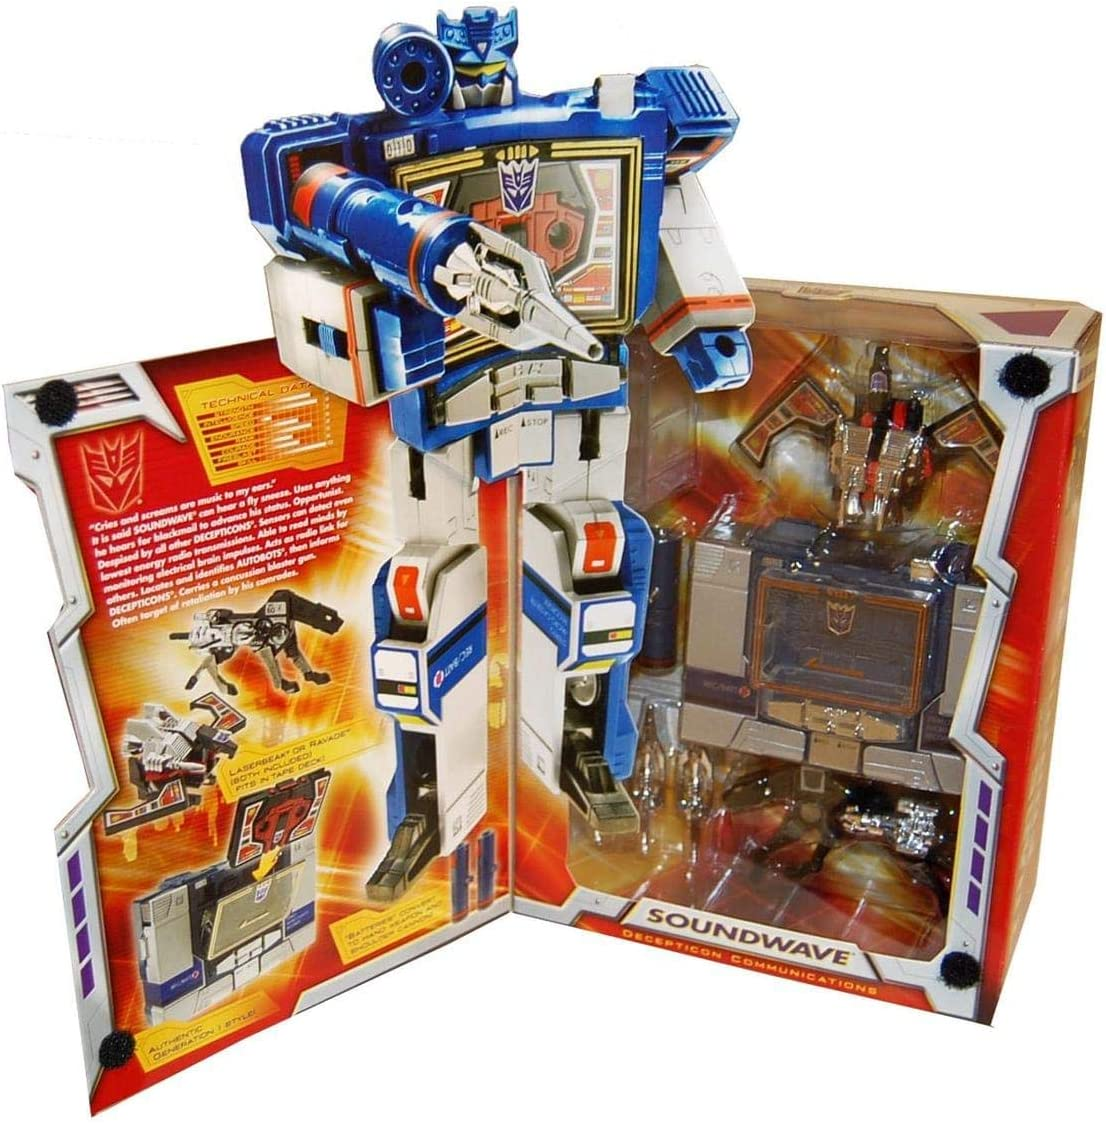 Transformers G1 Re-issue Deception Soundwave Action Figures No Buzzsaw In Box